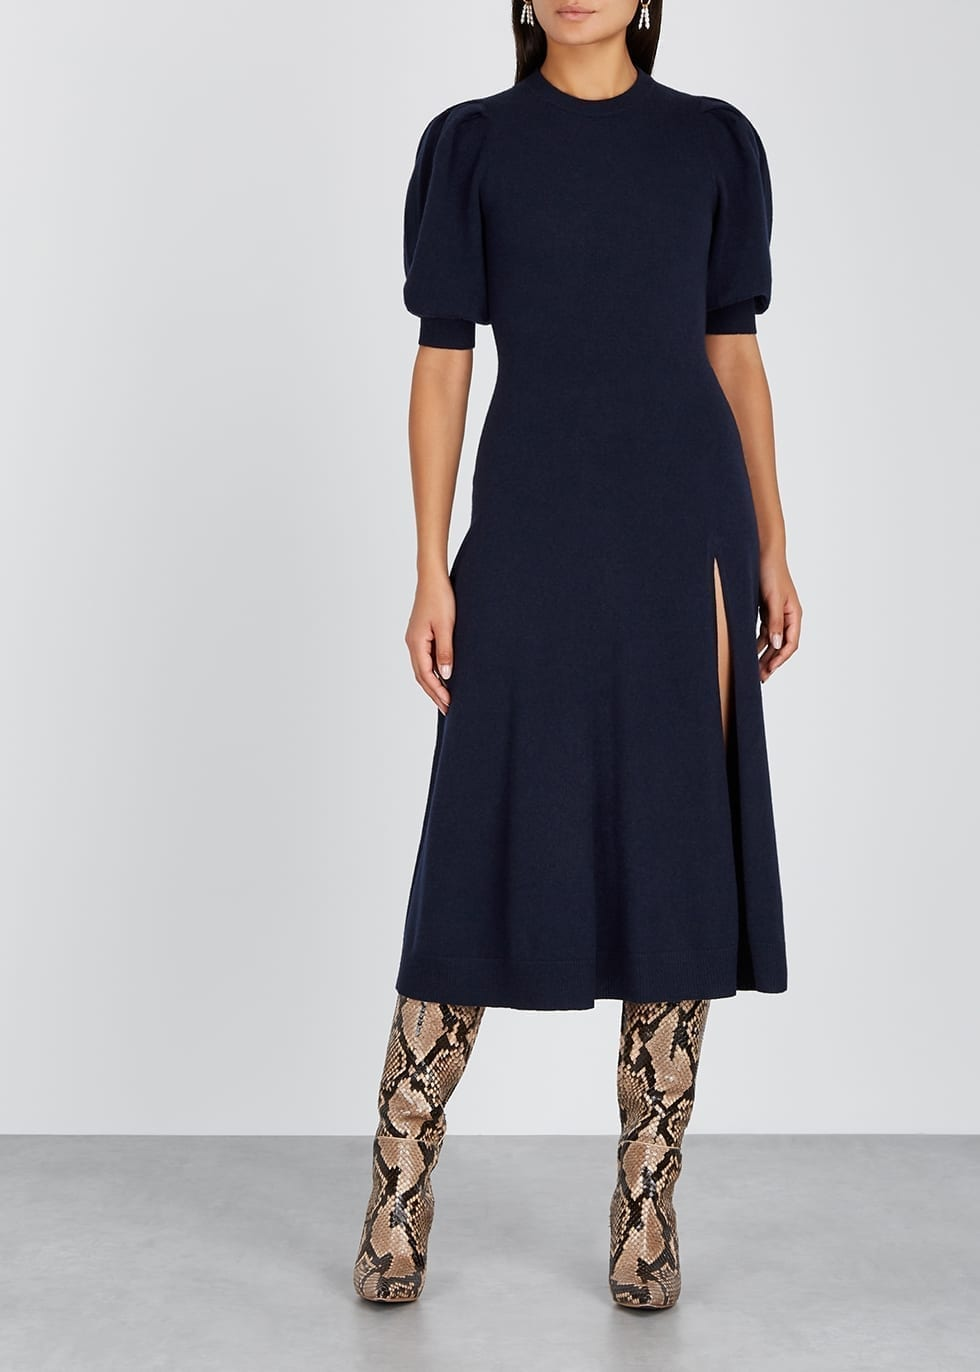 JONATHAN SIMKHAI Navy Cashmere Midi Dress